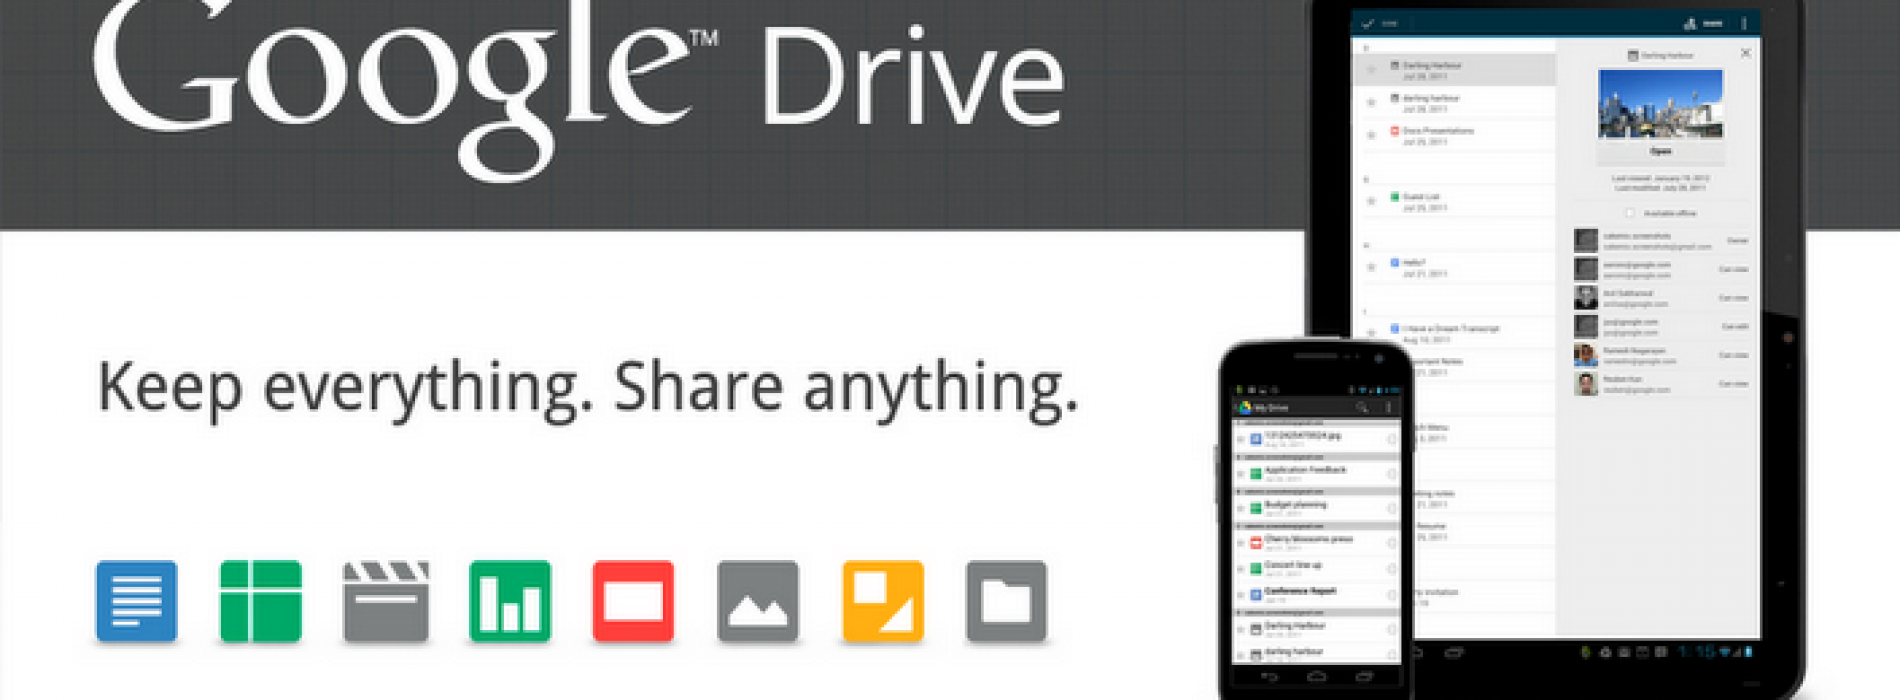 After years of rumors Google Drive becomes reality